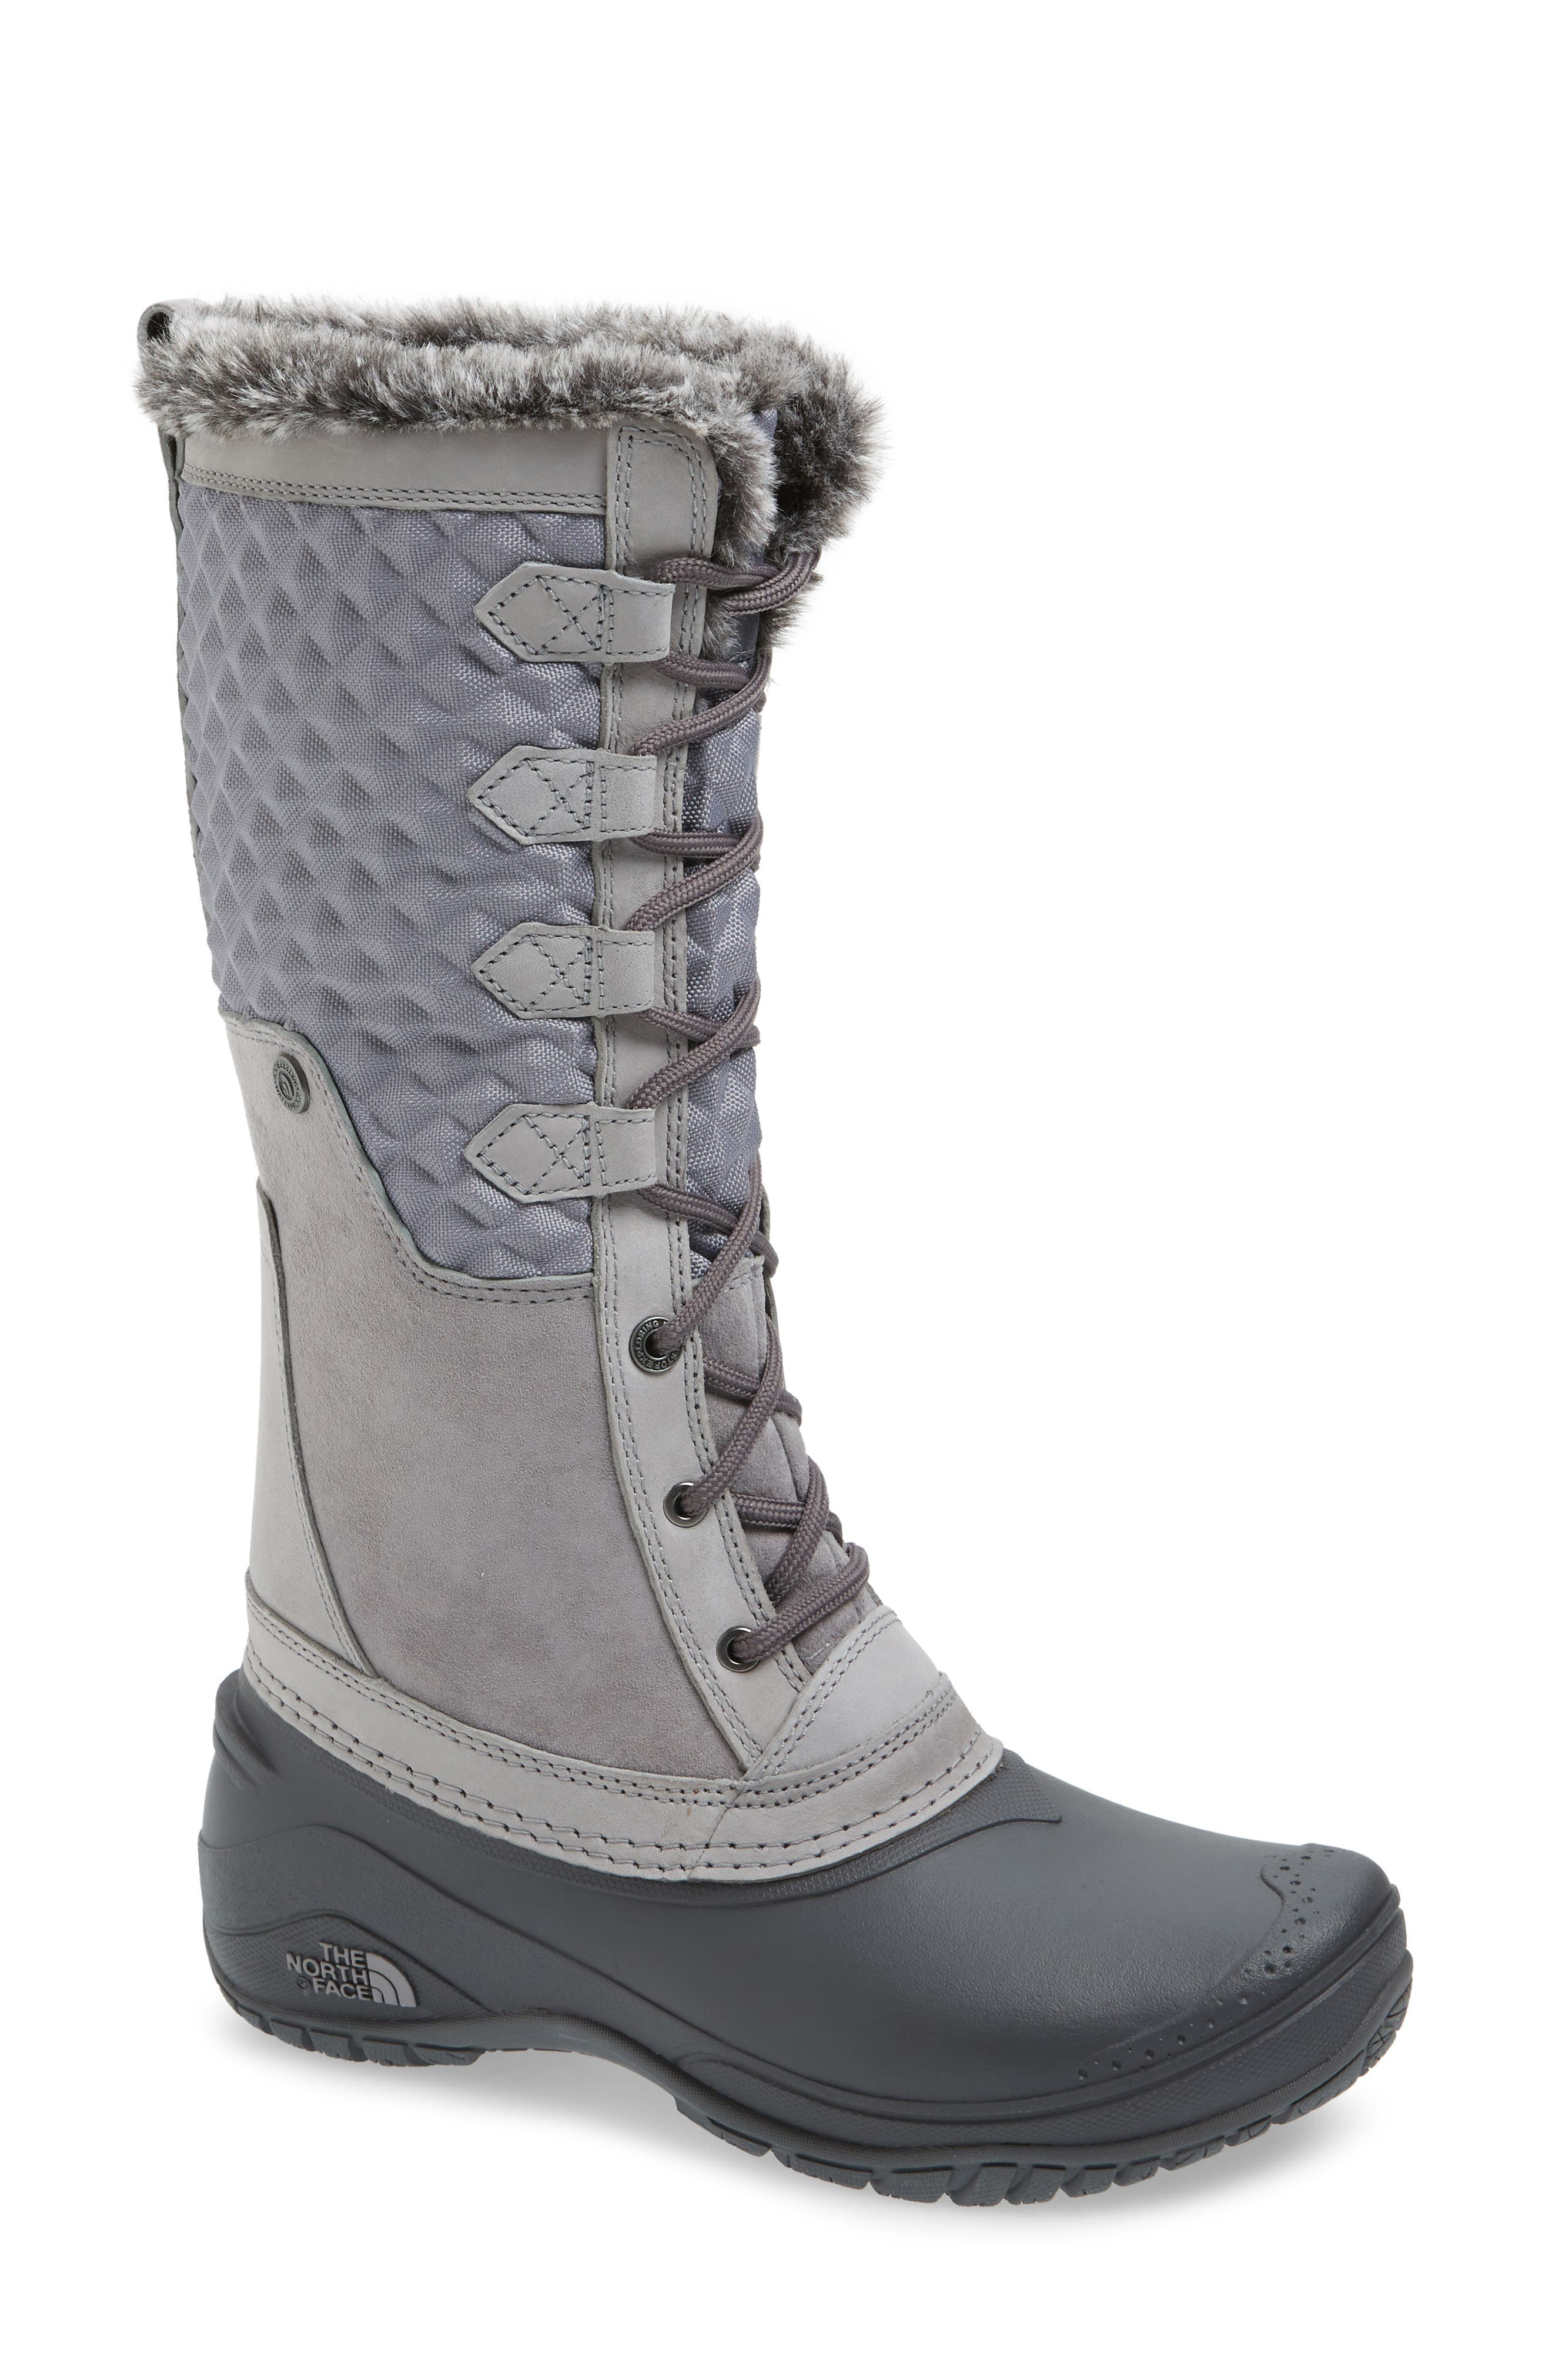 Main Image - The North Face Shellista III Tall Waterproof Insulated Winter Boot (Women)